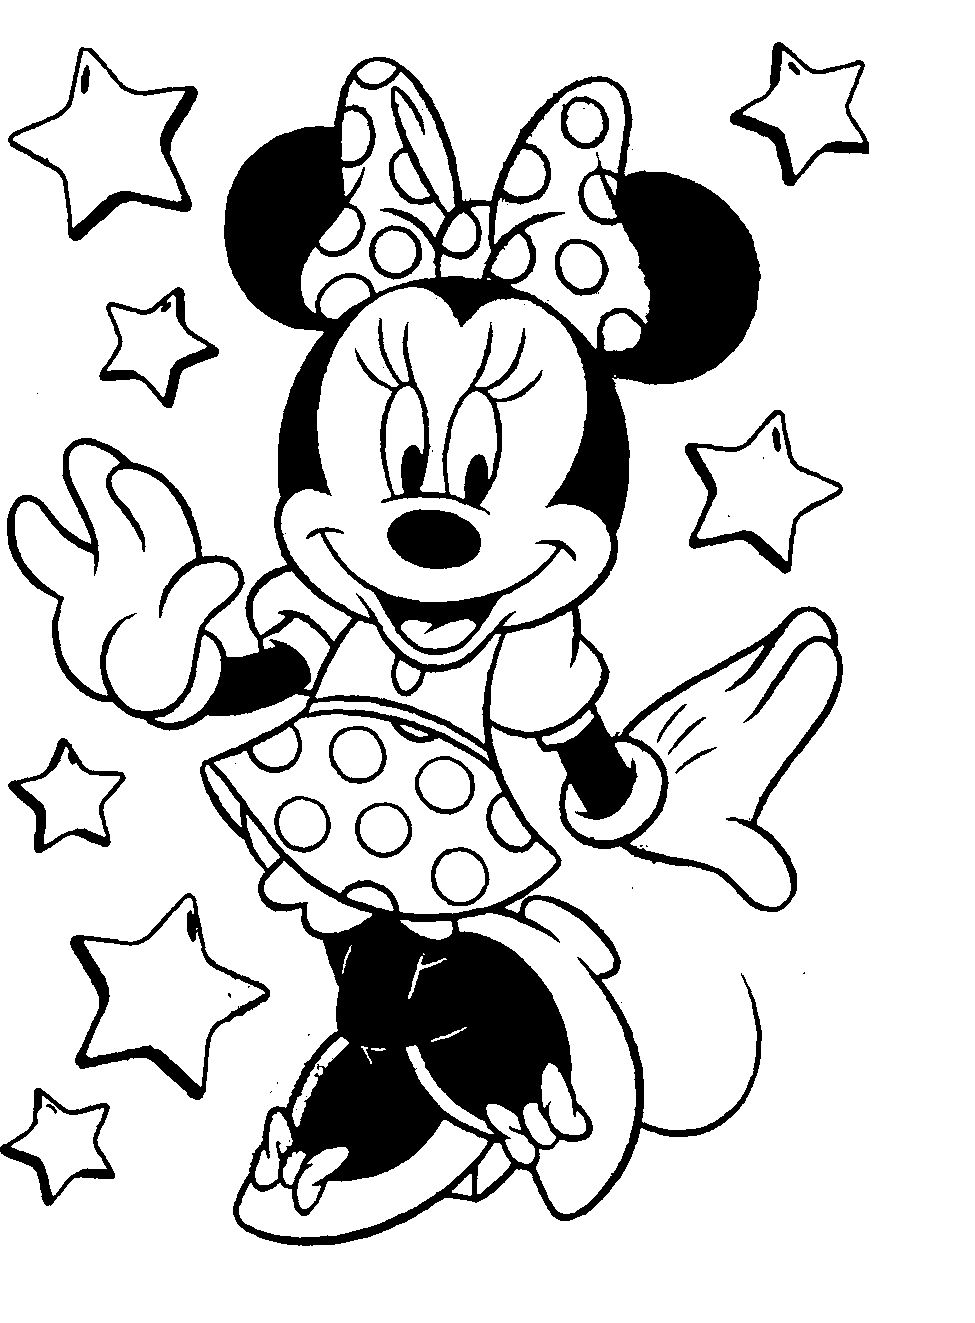 Mickey Mouse And Minnie Coloring For Kids Great About Printable Color Pages Disne Minnie Mouse Coloring Pages Mickey Mouse Coloring Pages Disney Coloring Pages